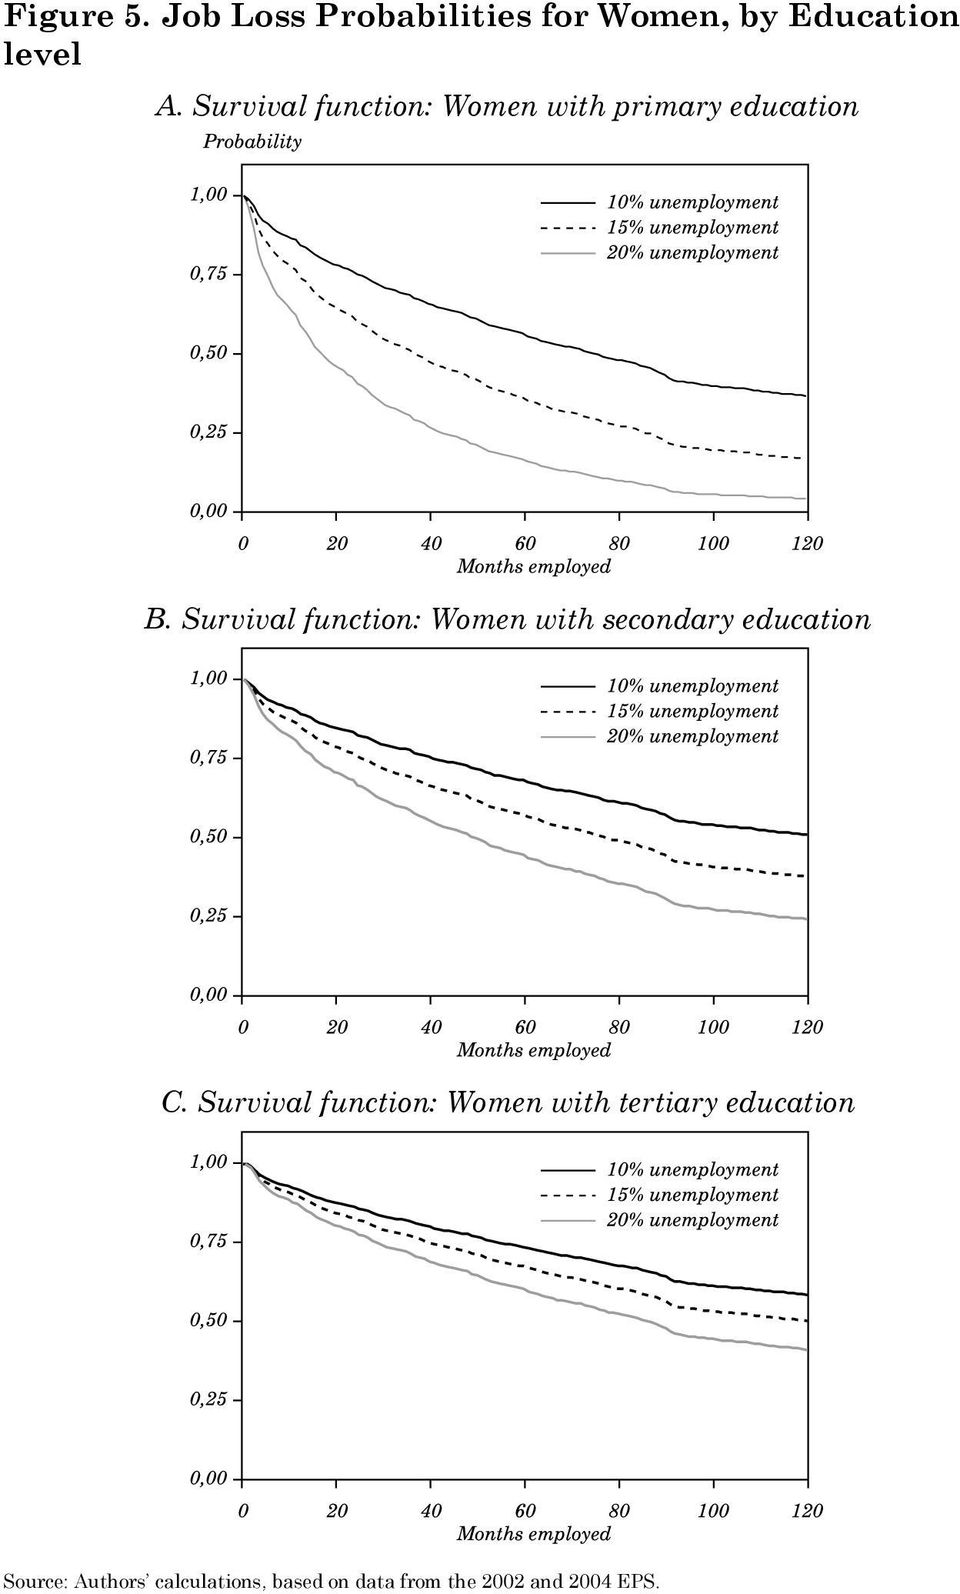 Survival function: Women with secondary education C.